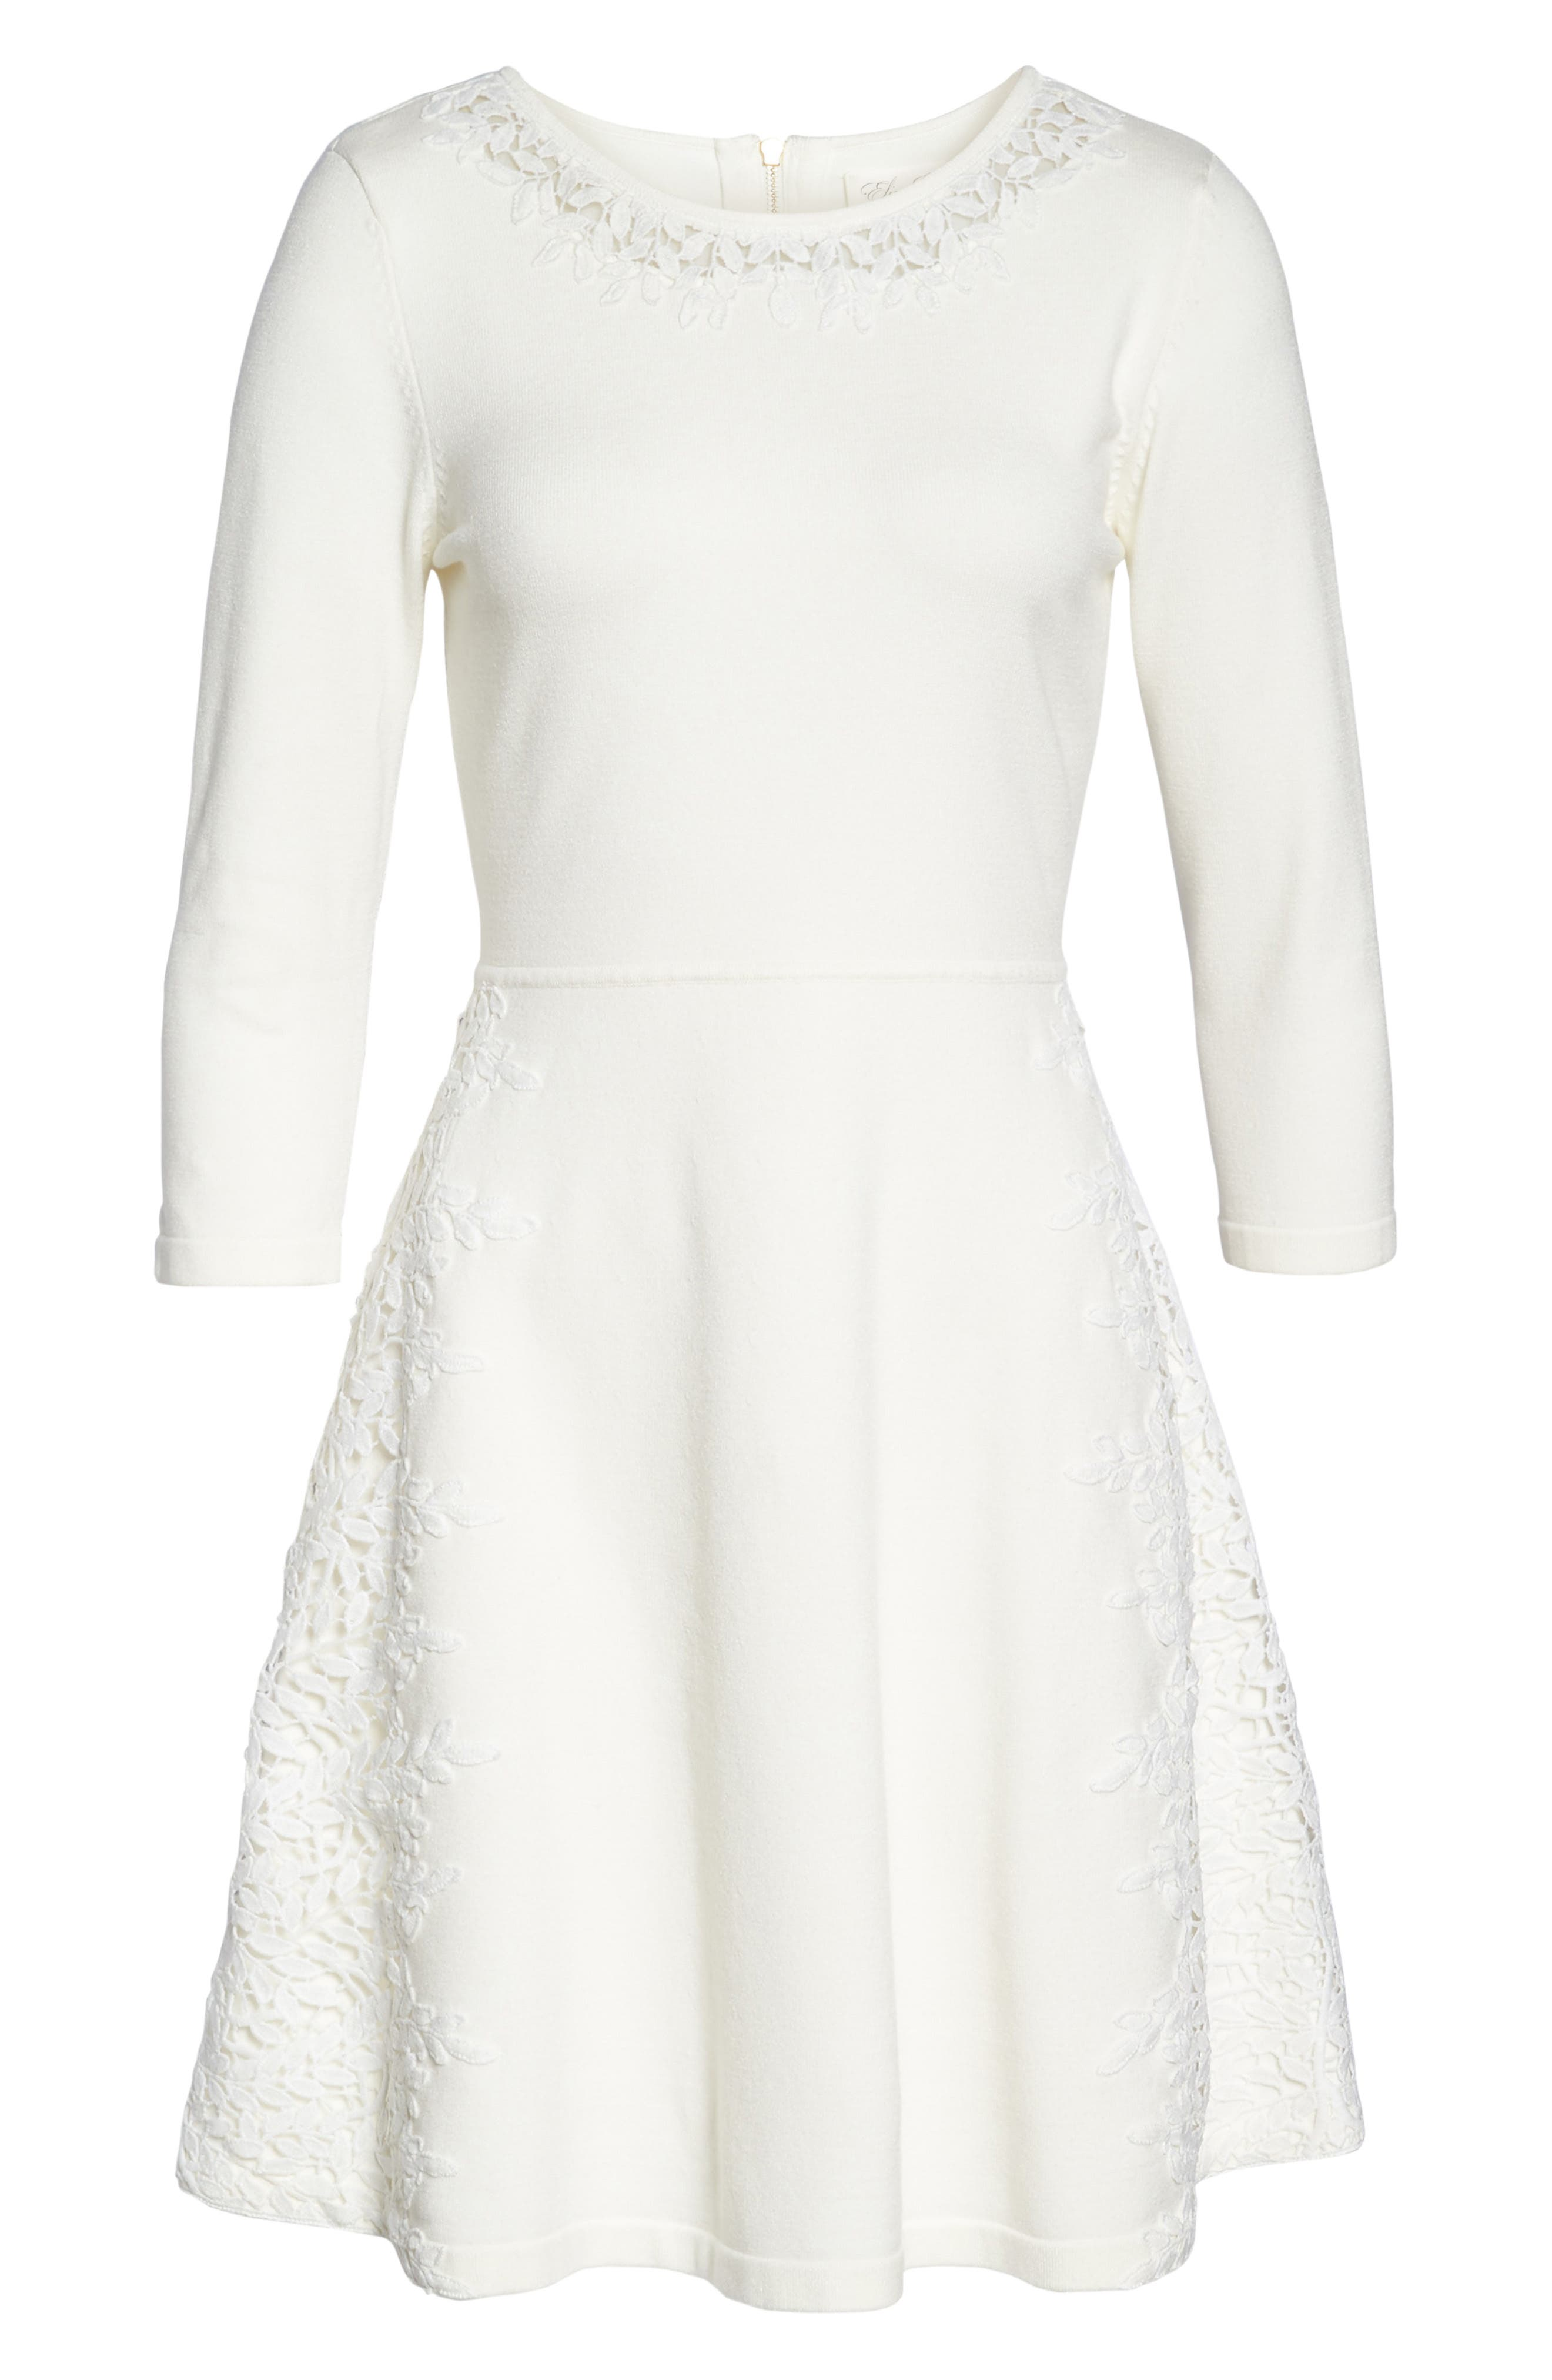 Lace Overlay Sweater Dress,                             Alternate thumbnail 6, color,                             Ivory